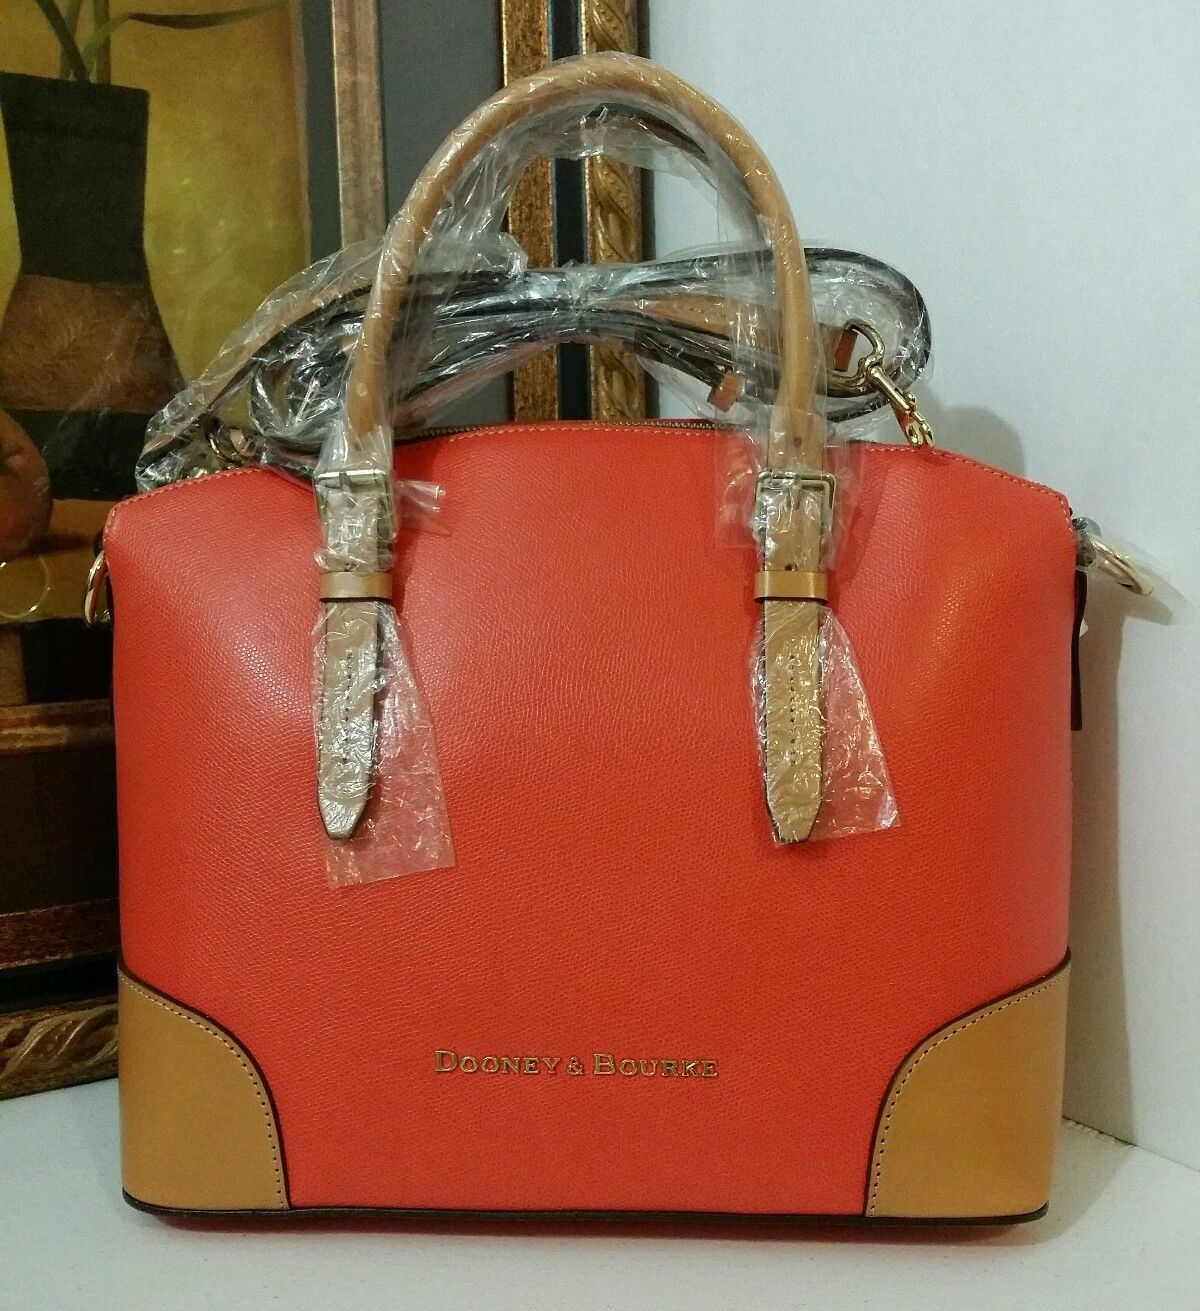 NWT Dooney & Bourke LF062 GE Claremont Domed Satchel Geranium